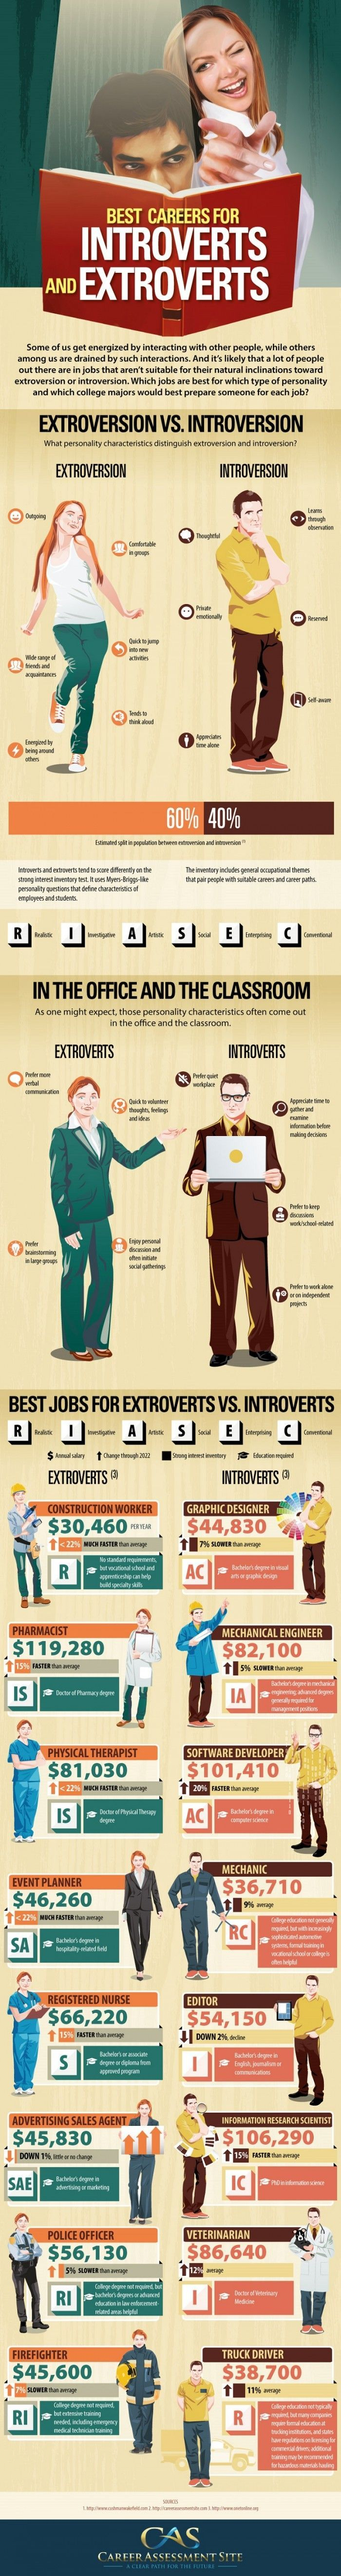 Career Test Free Inspiration The Best Careers For Introverts And Extroverts Infographic .